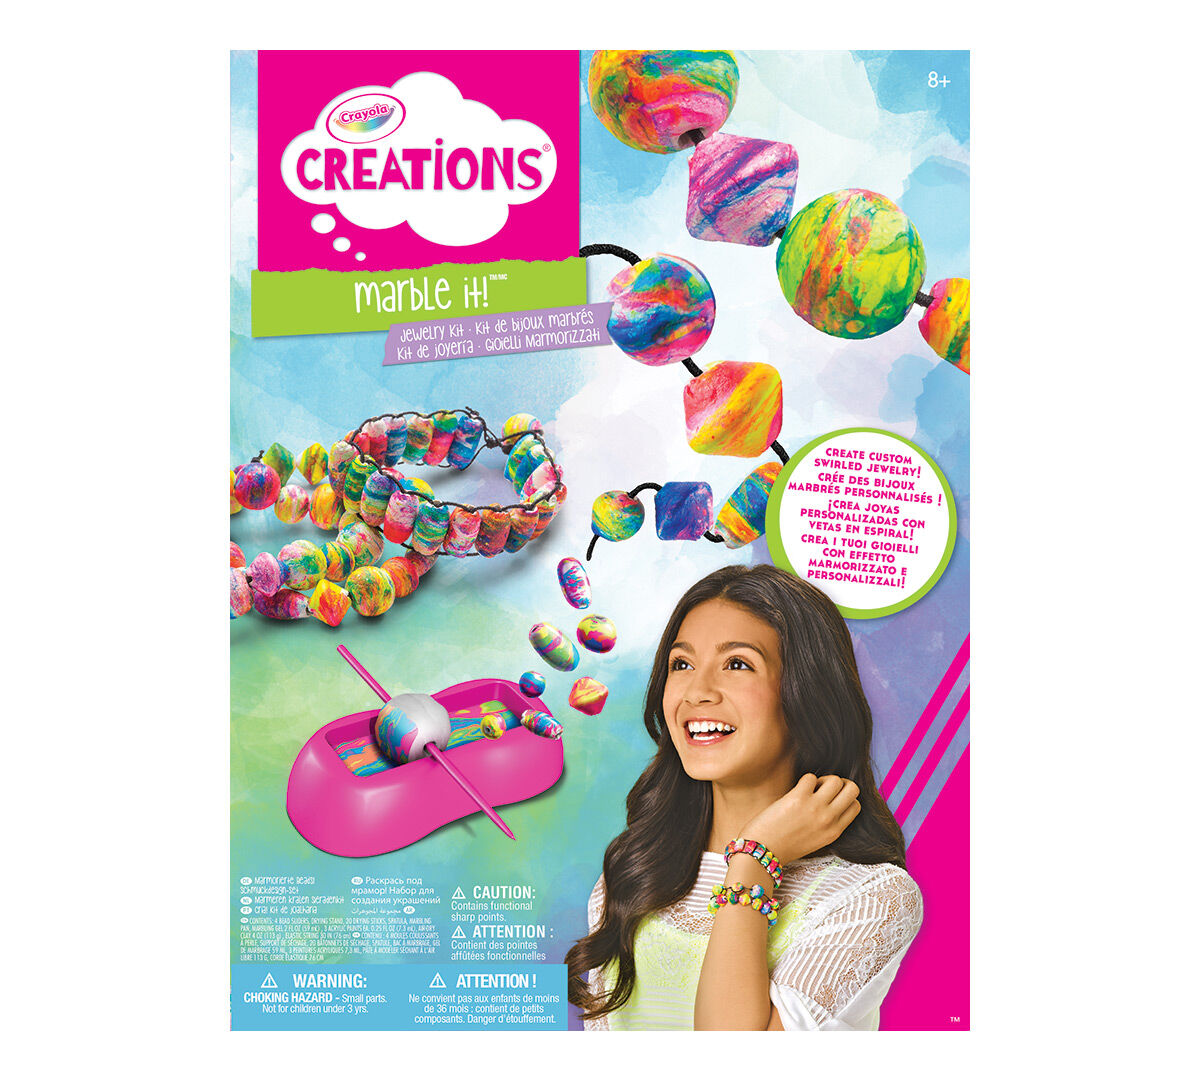 Crayola creations marbling it jewelry kit crayola Crayola fashion design studio reviews